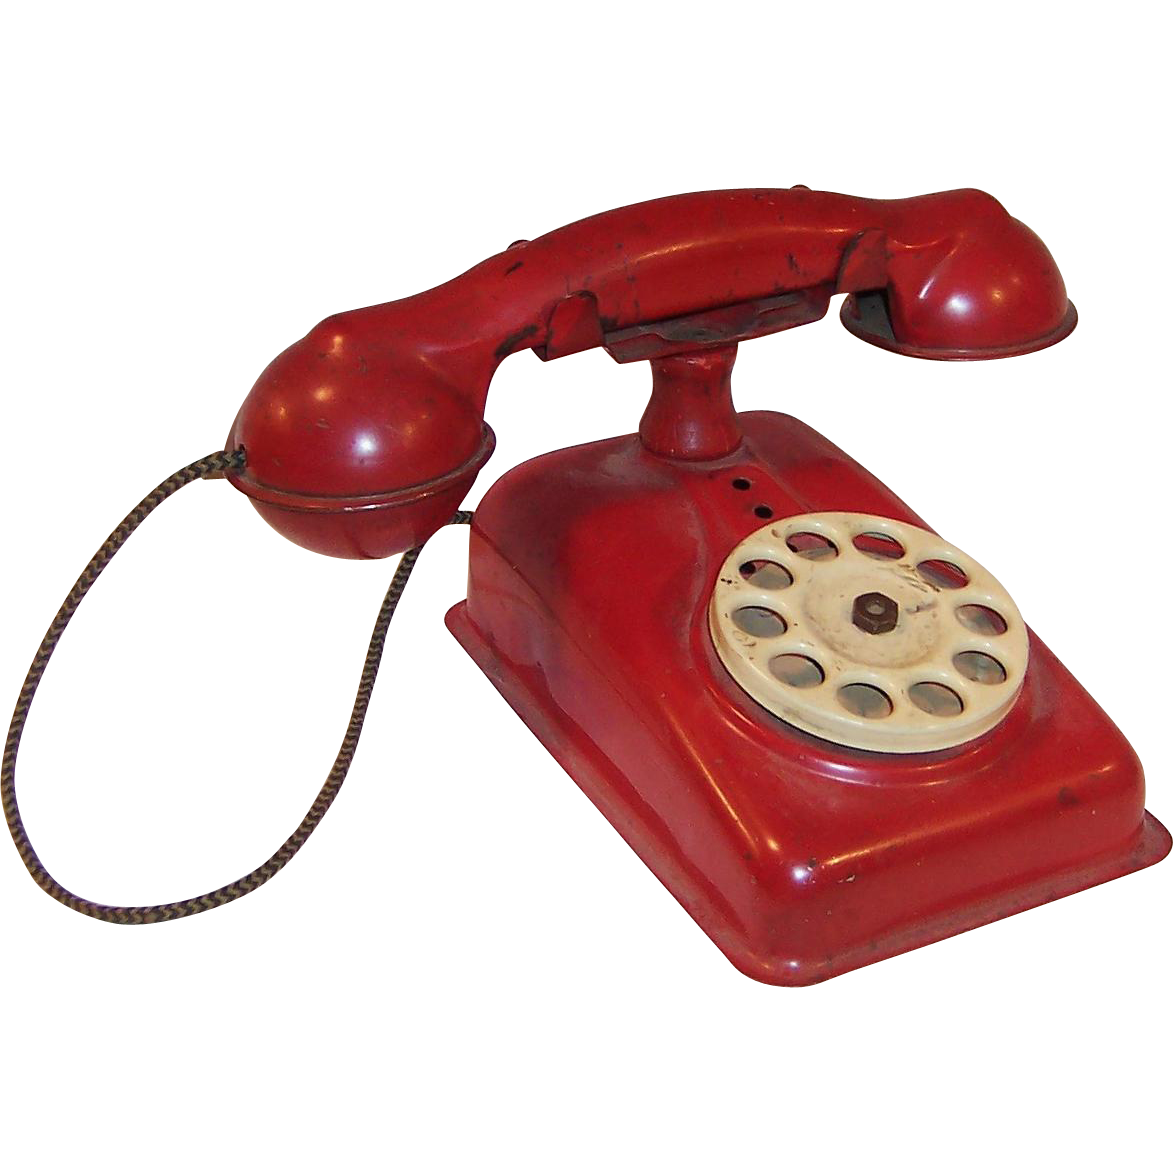 hight resolution of  vintage red at www rubylane com rubylanecom vintage 1950 s red metal toy rotary ringing phone